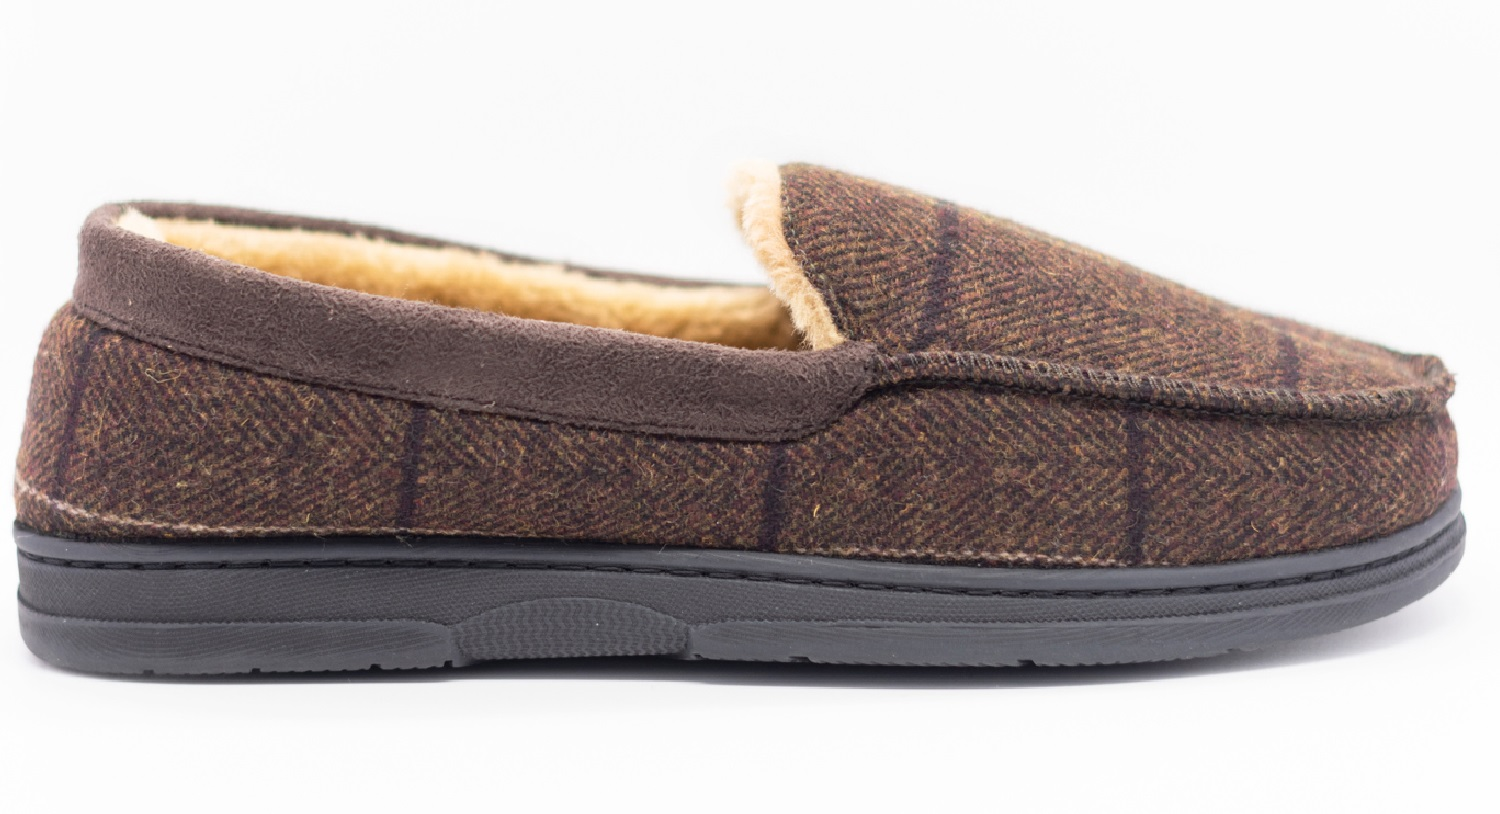 thumbnail 11 - MENS CHECK WARM MOCCASINS FAUX SUEDE SHEEPSKIN FUR LINED WINTER SLIPPERS SHOES